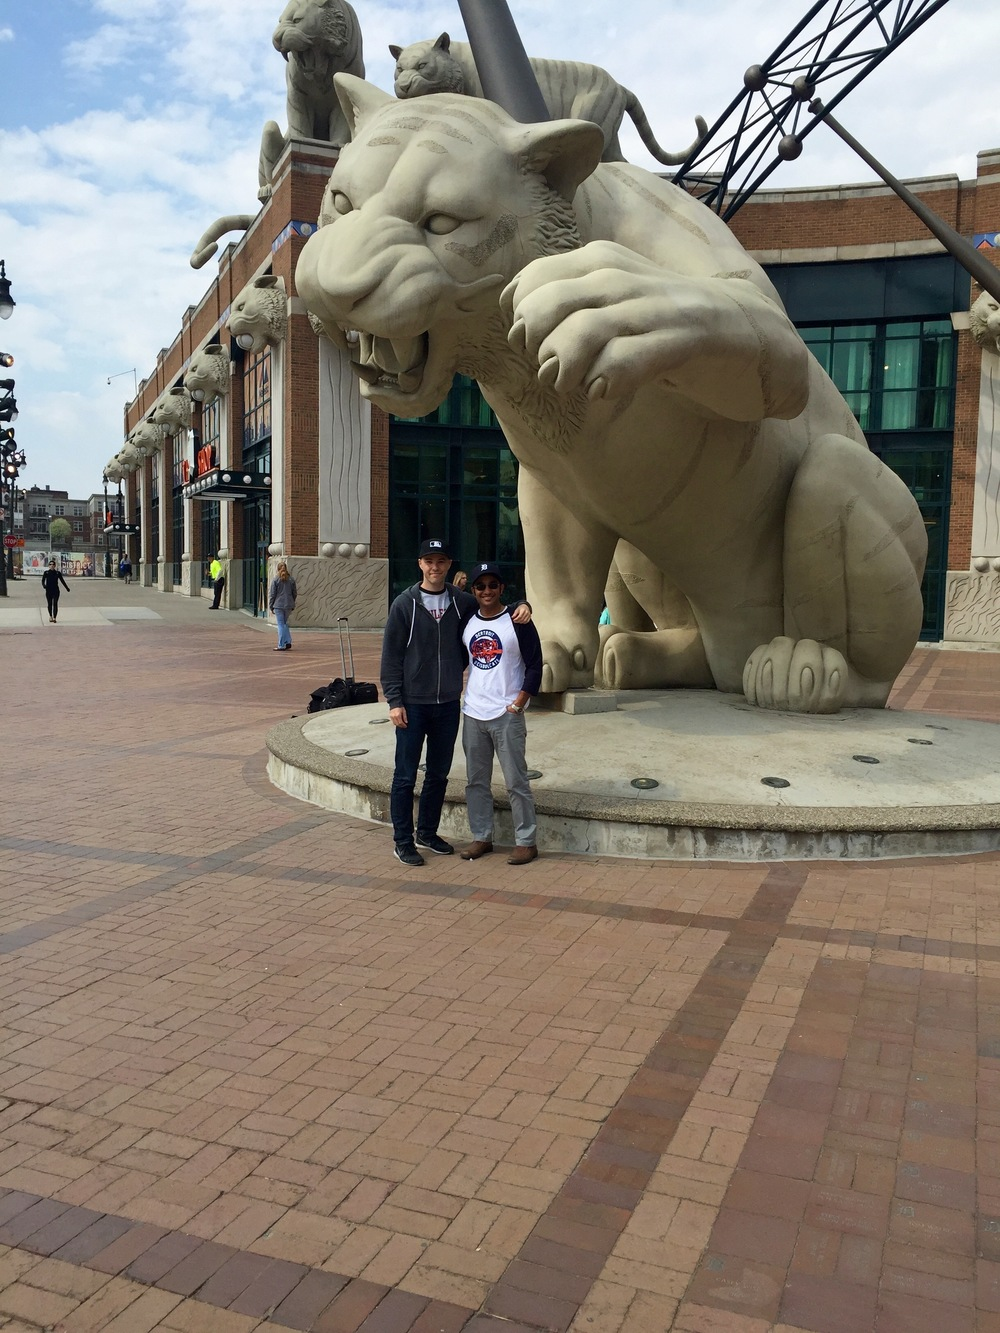 15_zack_and_muneesh_posing_with_the_big_cat.jpg